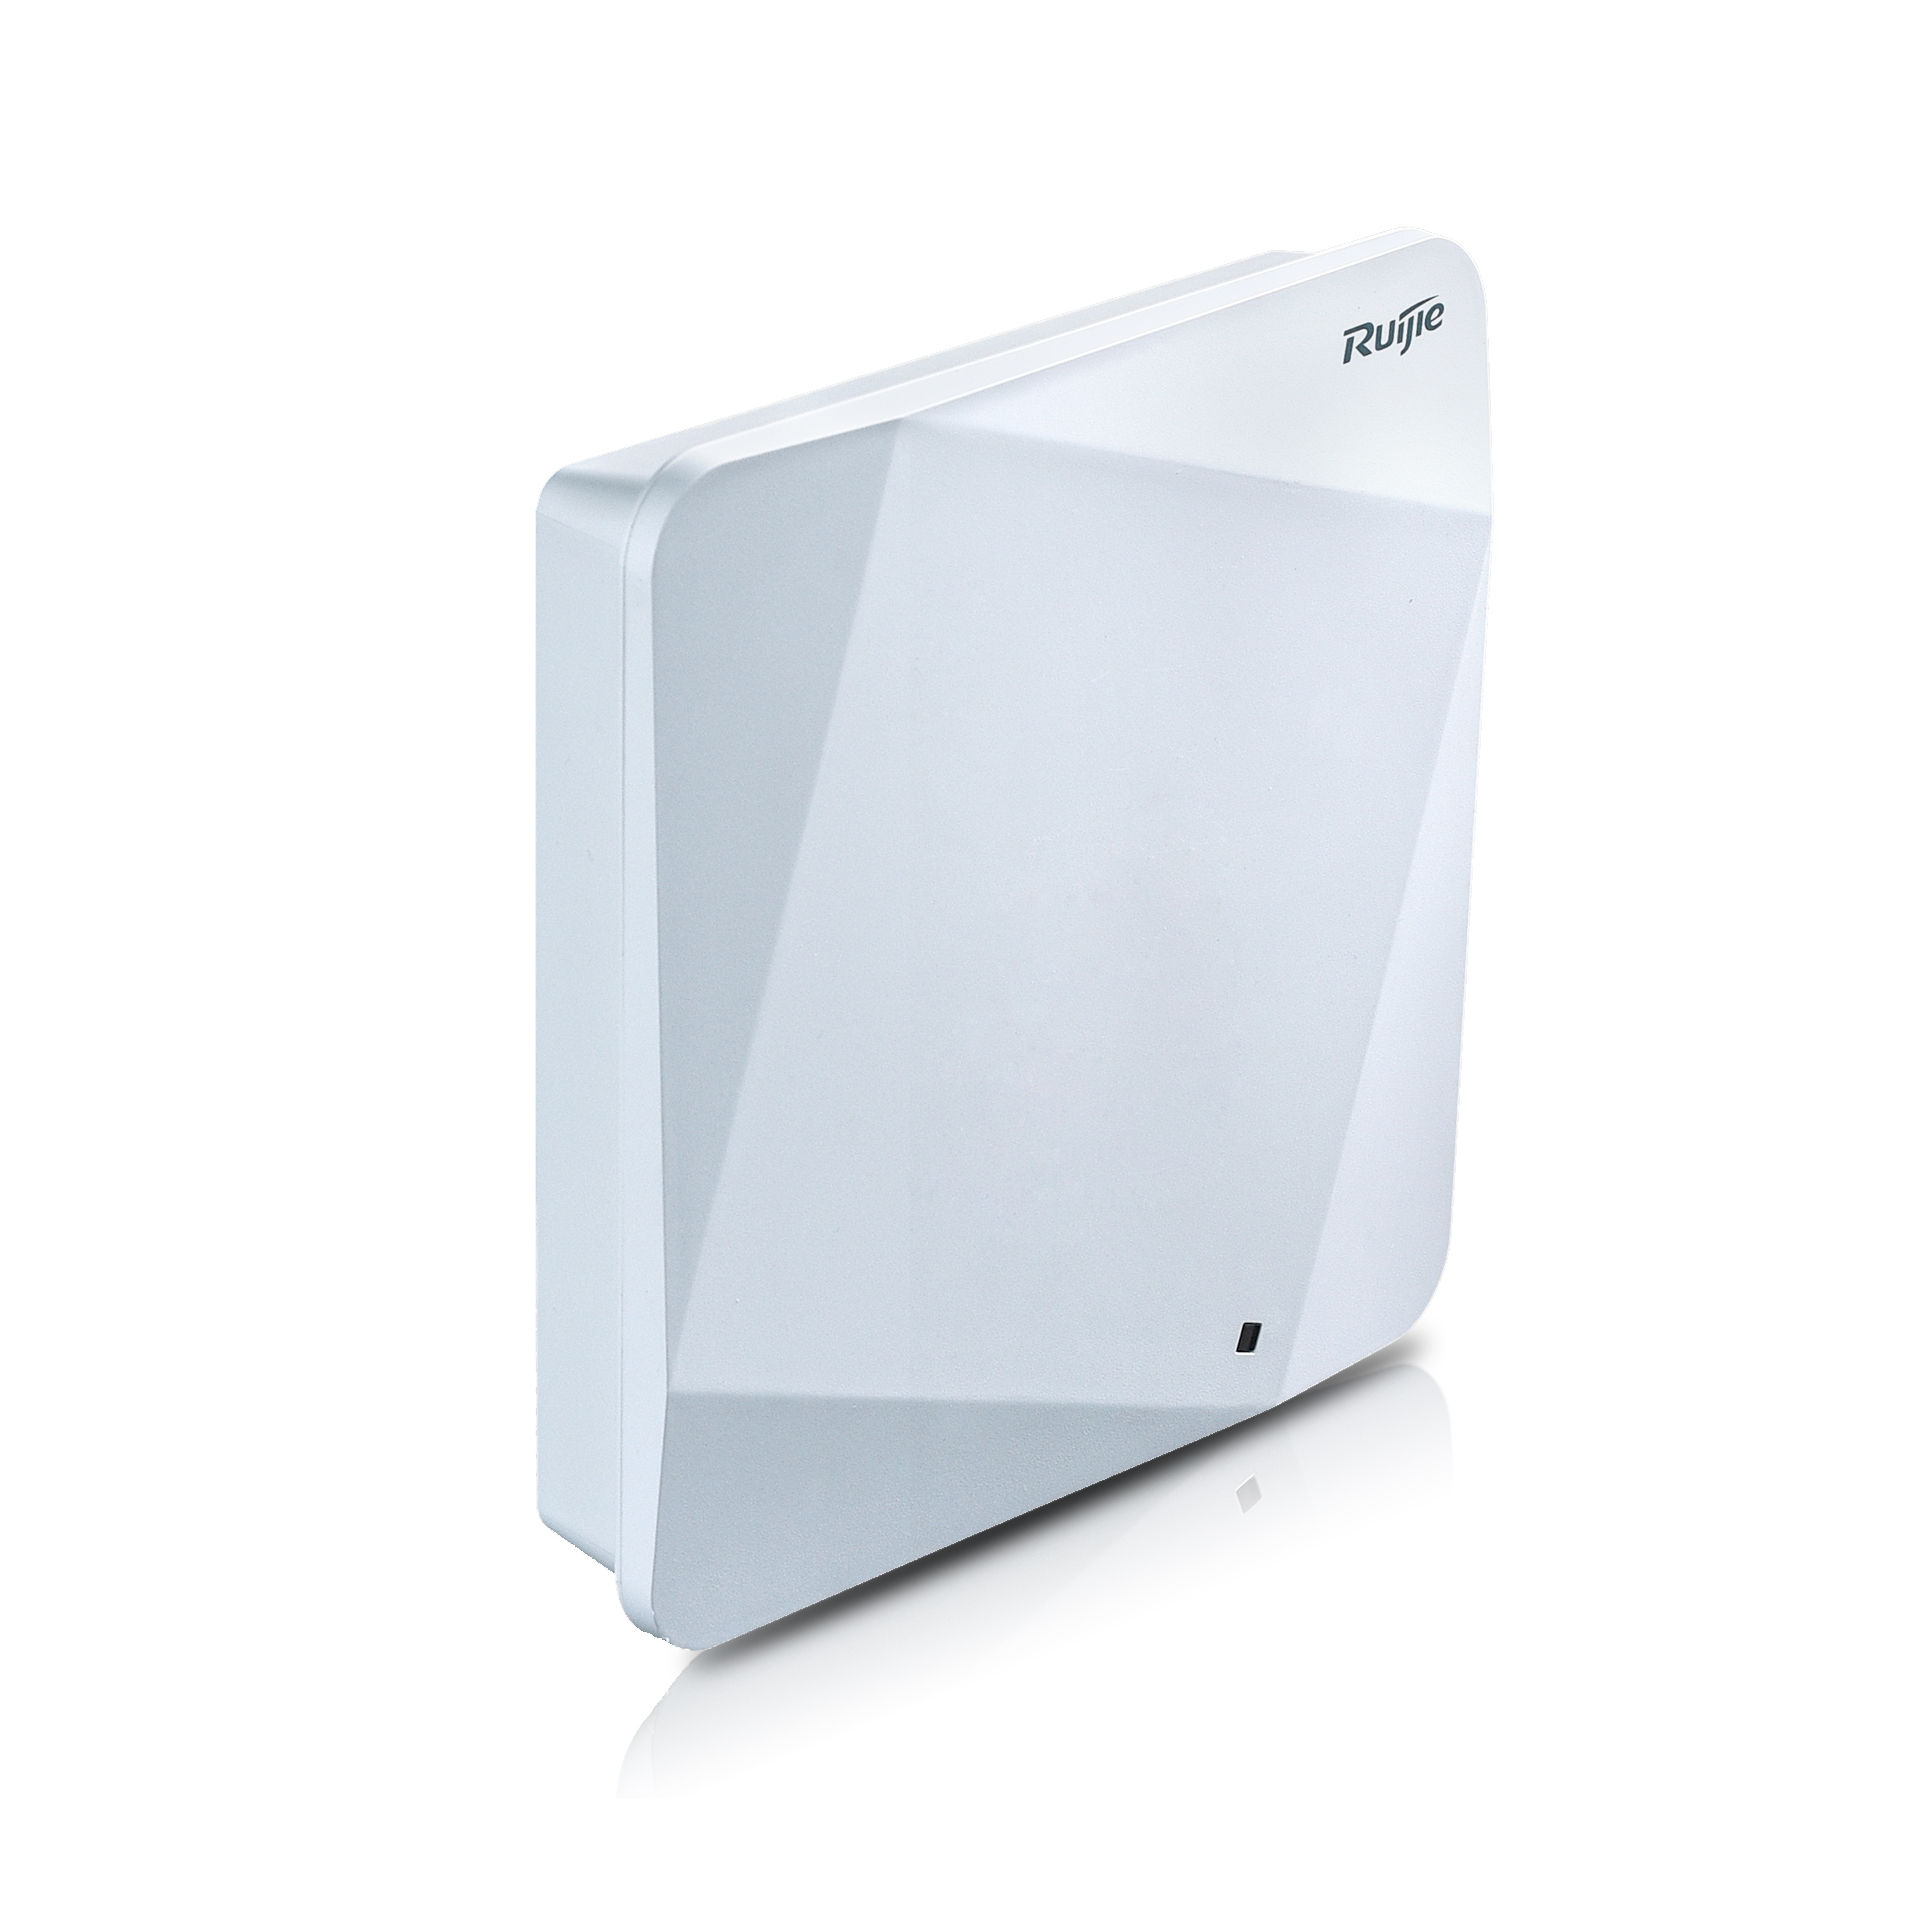 RUIJIE RG-AP720-L 1167MBPS 2PORT 2x2MIMO 2.4 GHZ & 5 GHZ INDOOR WAVE2 ACCESS POINT